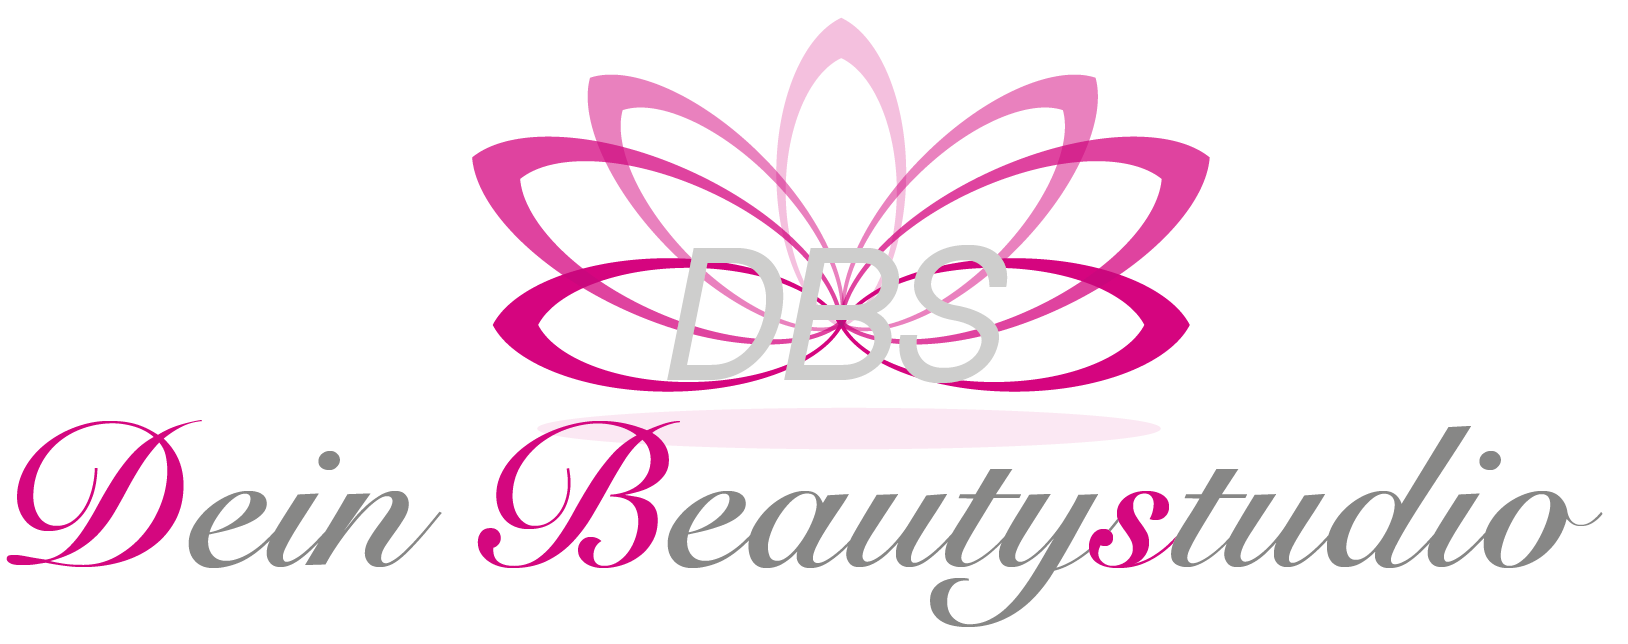 DBS - Dein Beautystudio